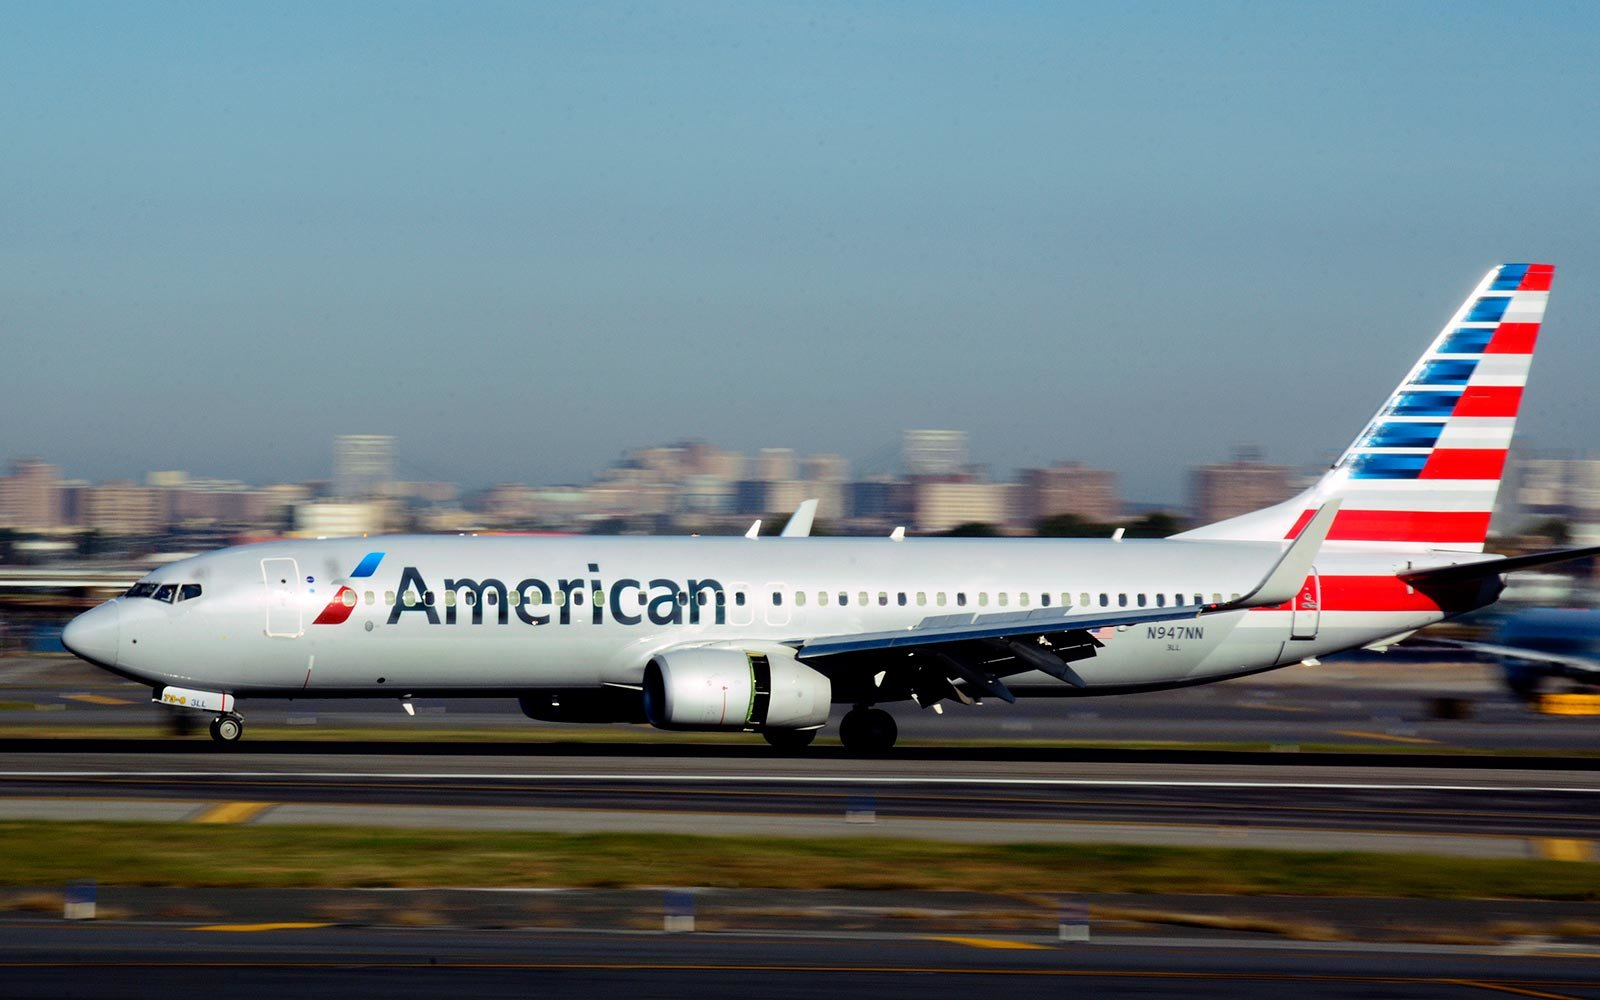 American Airlines Boeing 737 Airplane